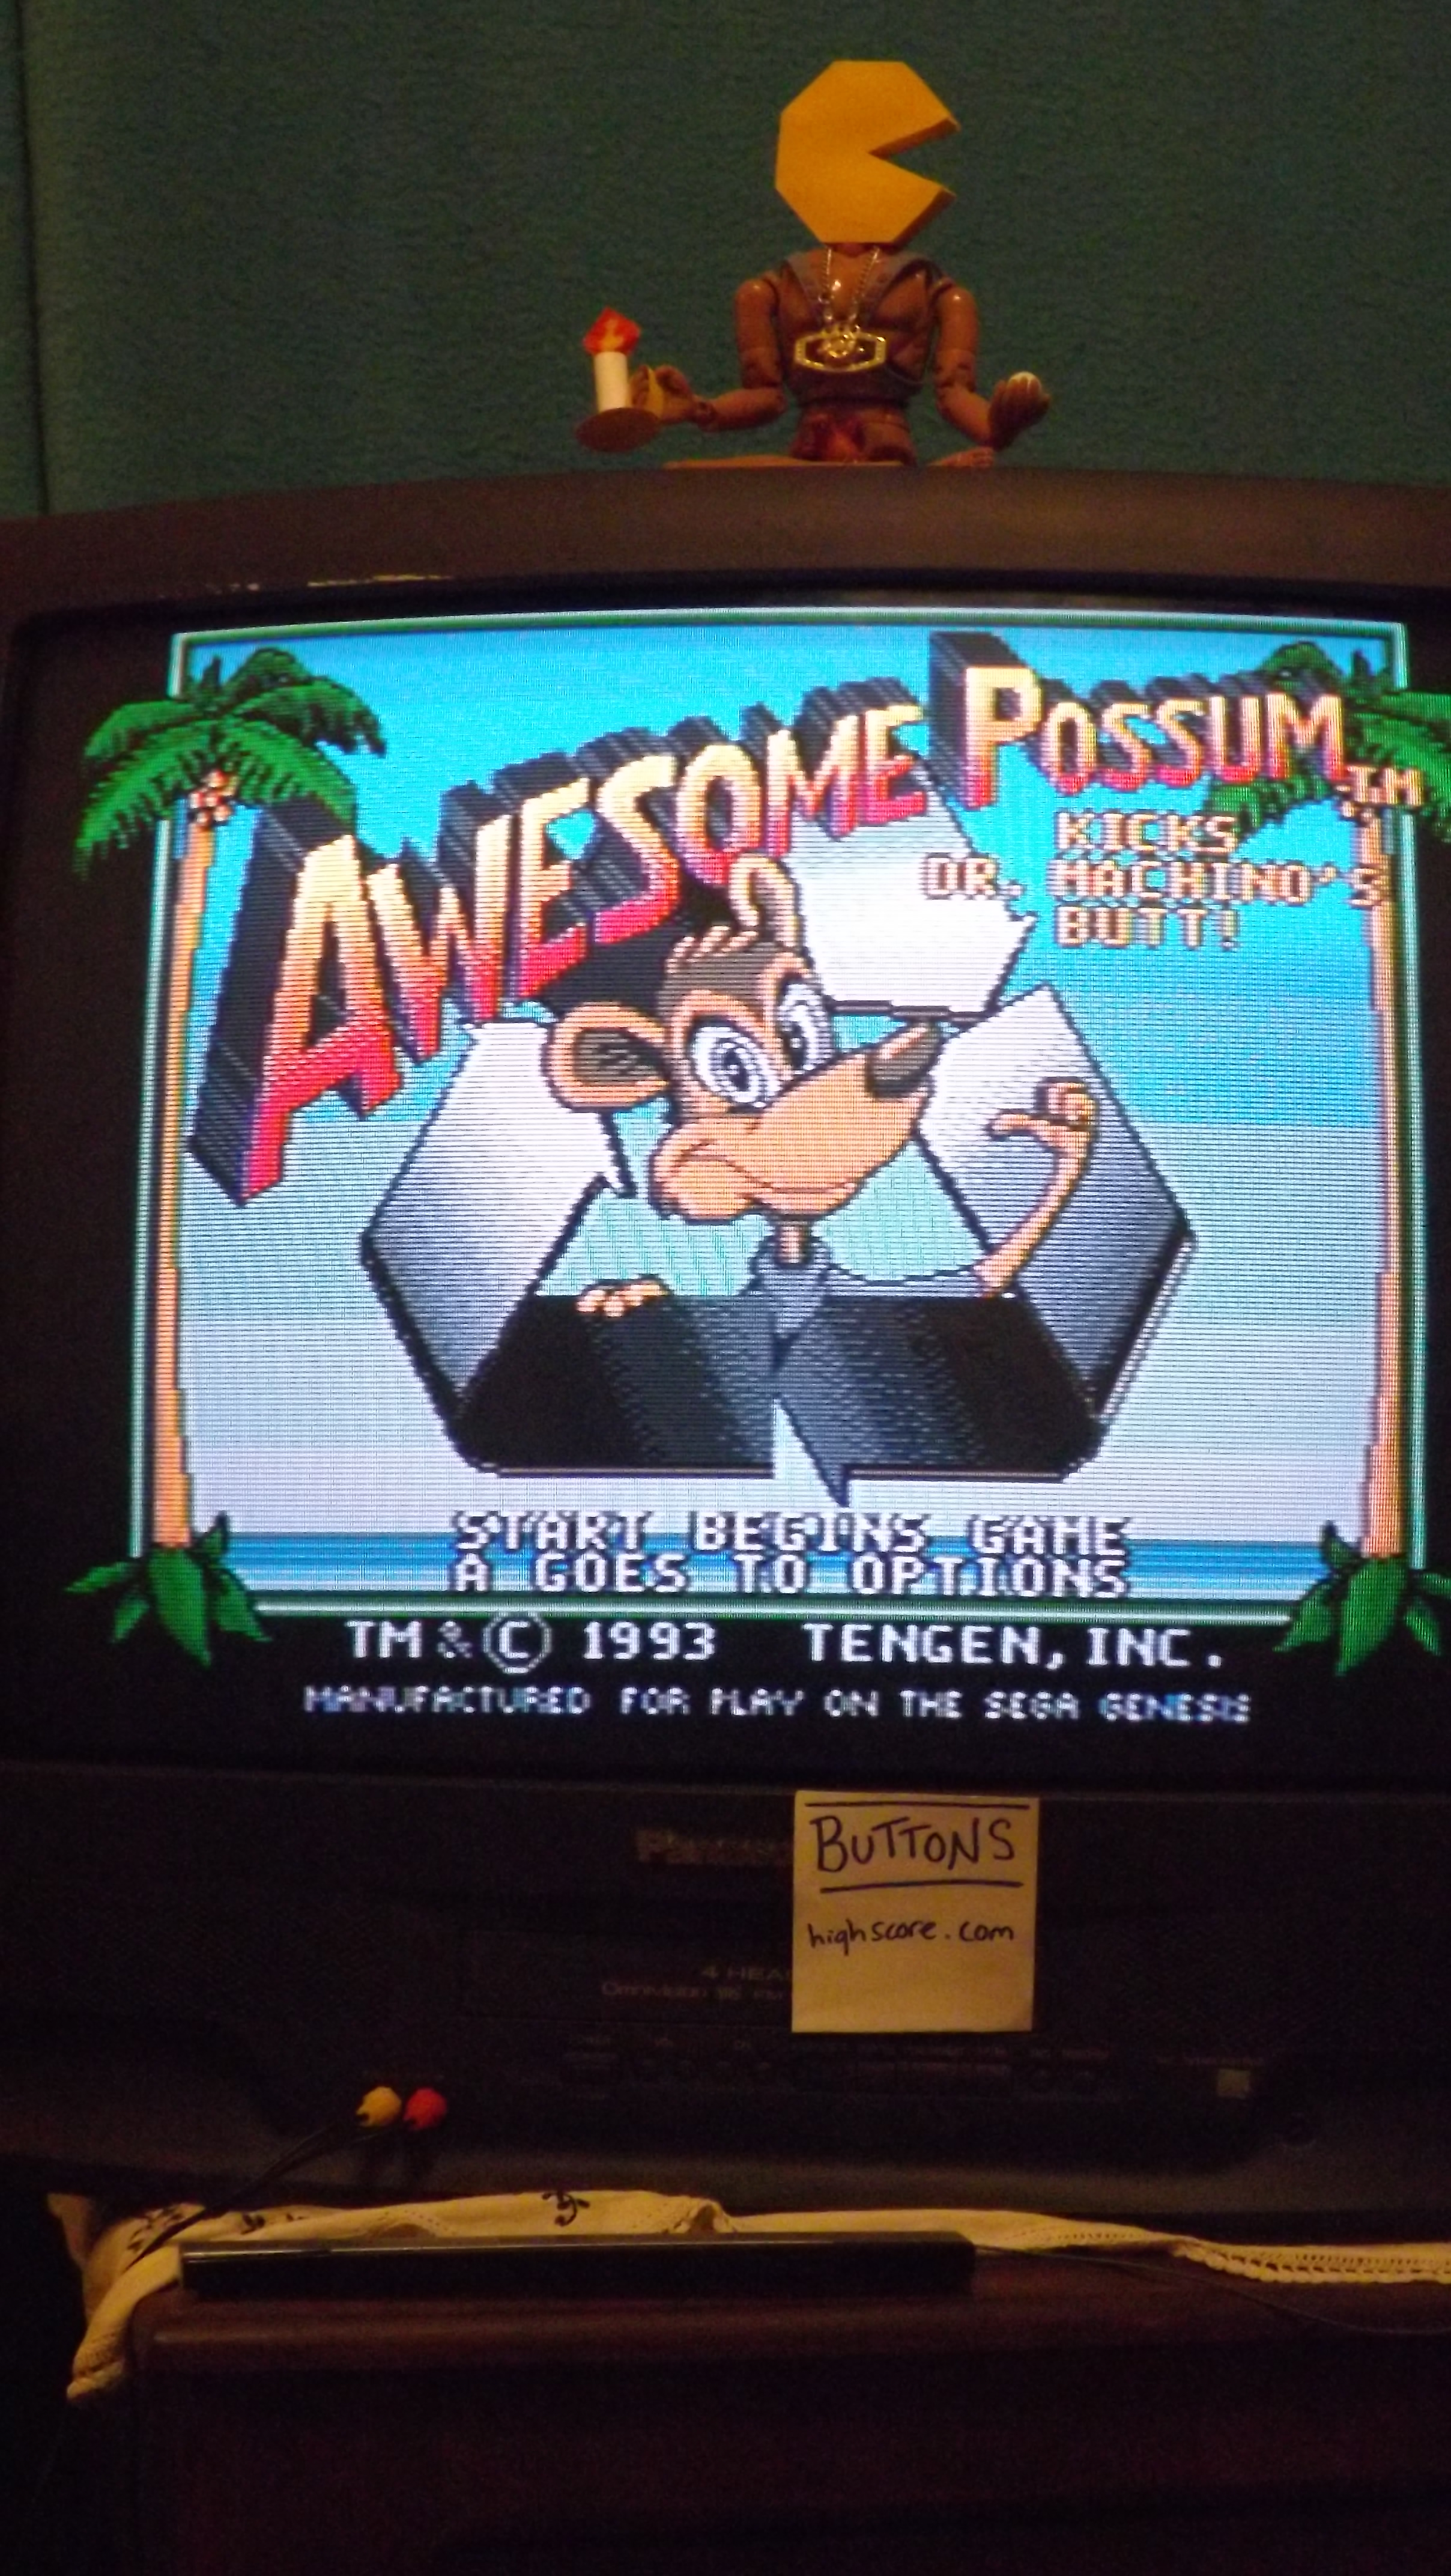 Buttons: Awesome Possum (Sega Genesis / MegaDrive) 70,690 points on 2017-05-20 20:06:41